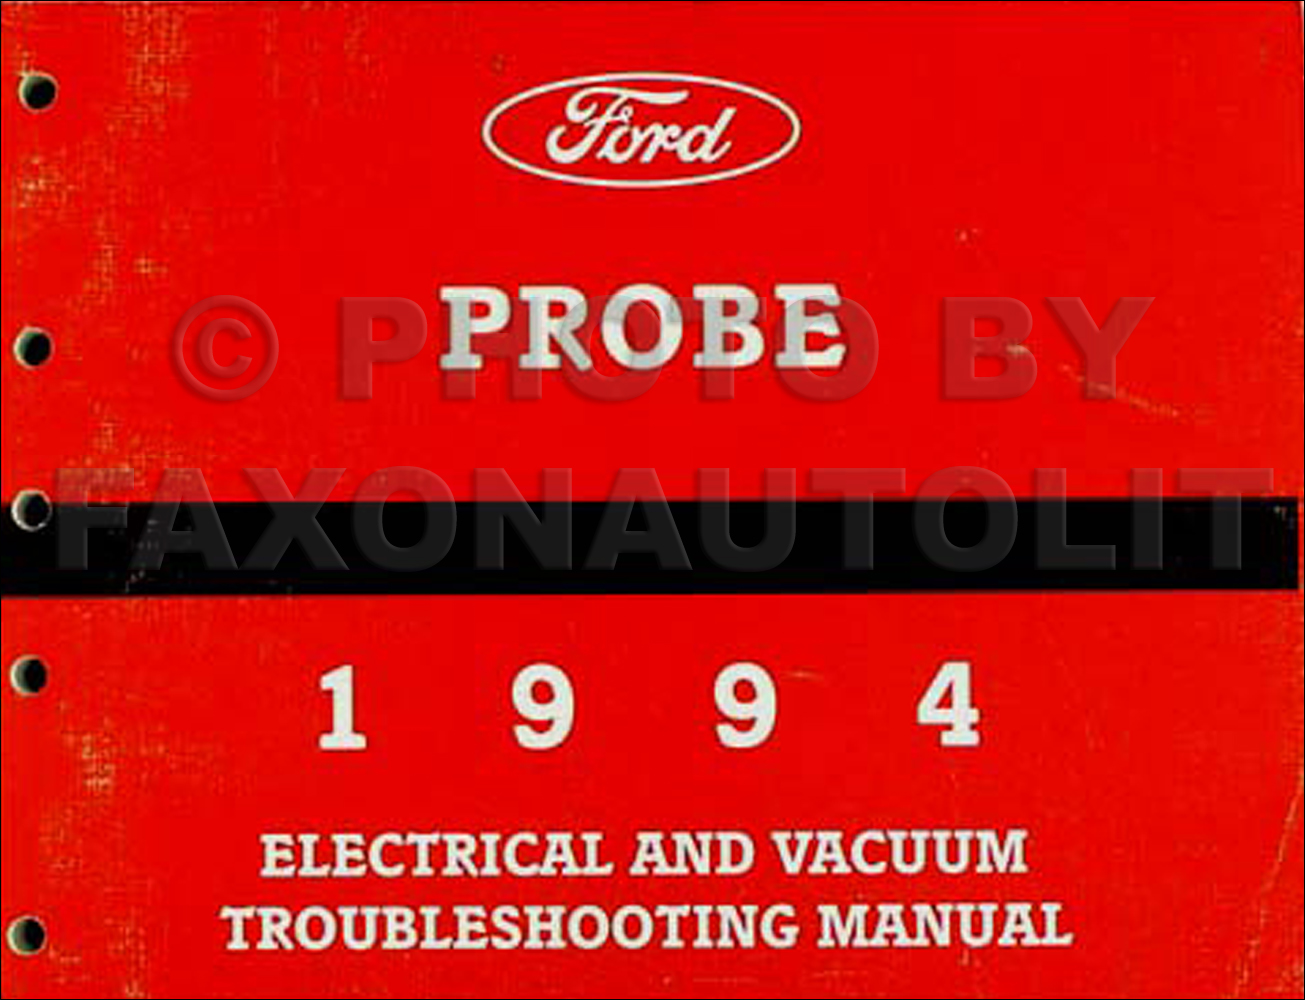 hight resolution of 1994 ford probe electrical vacuum troubleshooting manual original 1995 ford truck wiring diagram l9000 wiring schematic